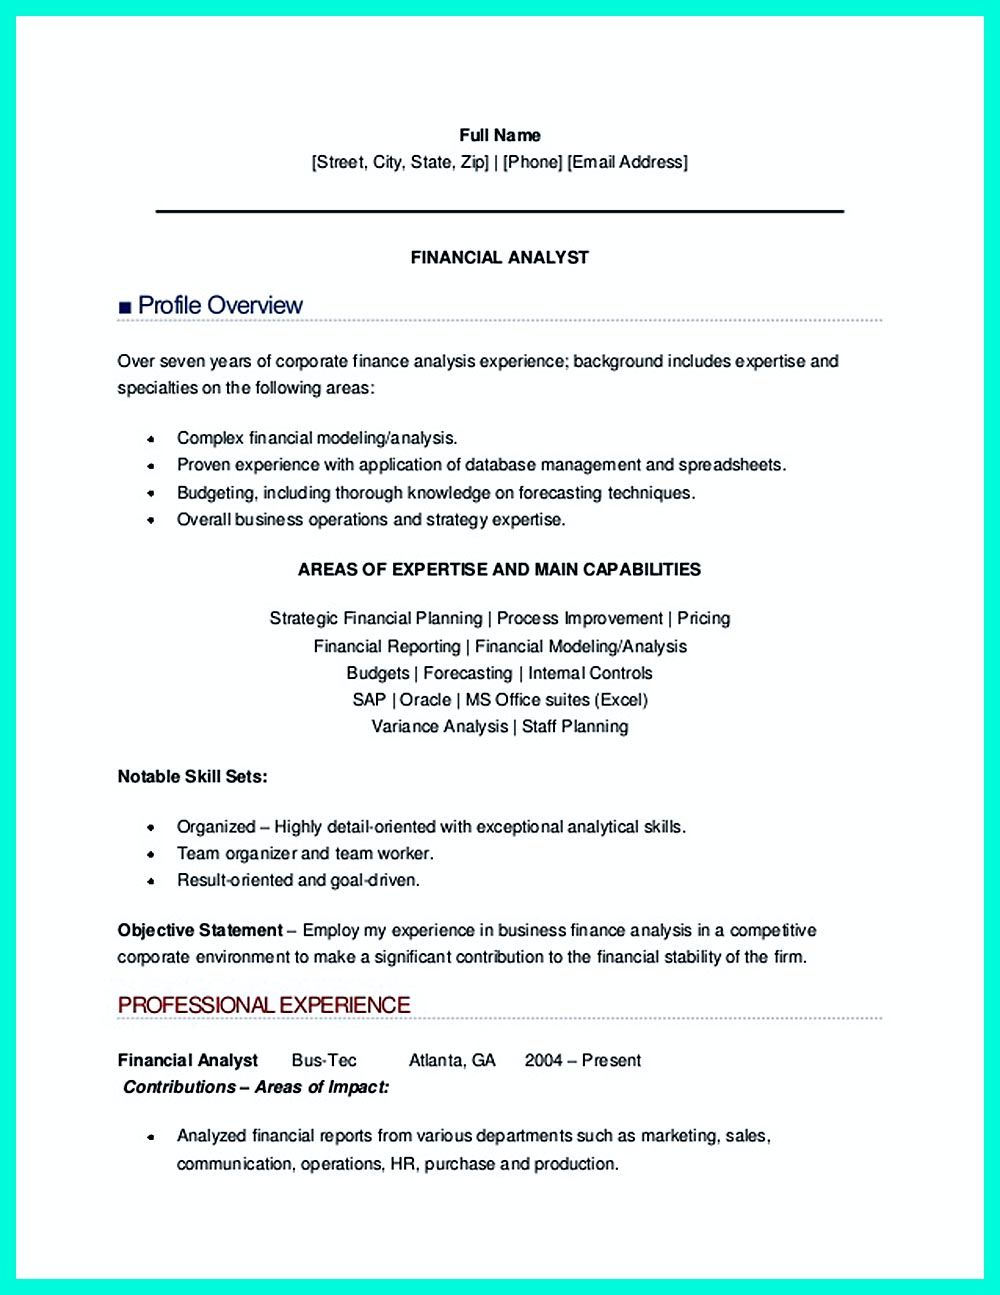 Financial Data Analyst Resume Resume Sample Of Finance Analyst  Data Analyst Sample Resume